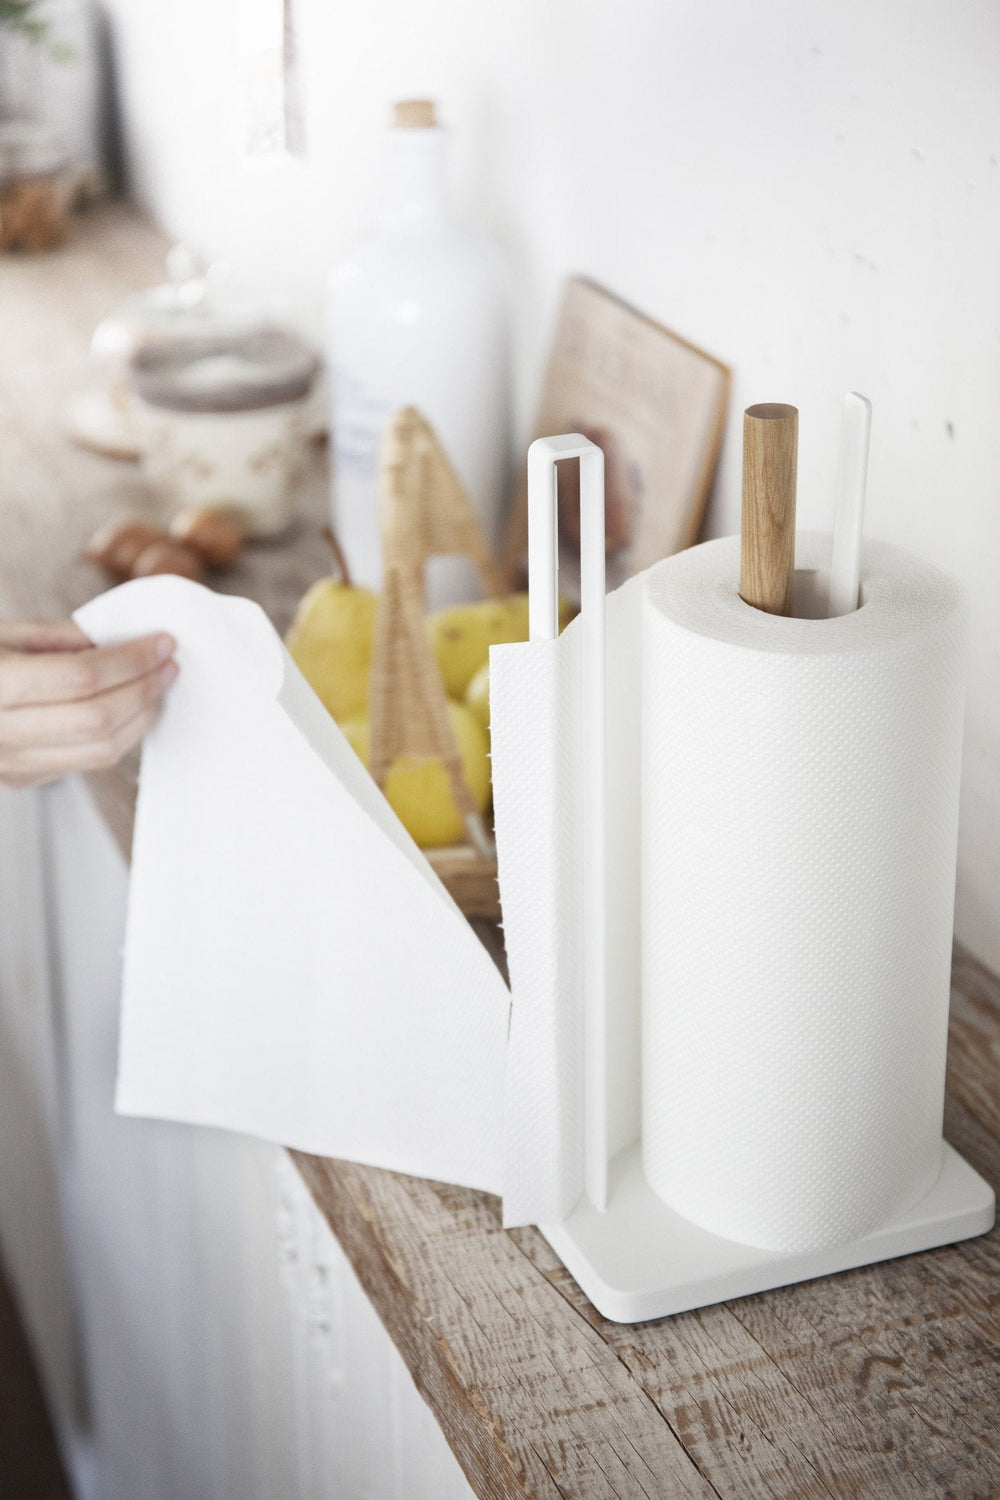 Tearing a paper towel with Yamazaki's standing paper towel holder with wooden rod and bar